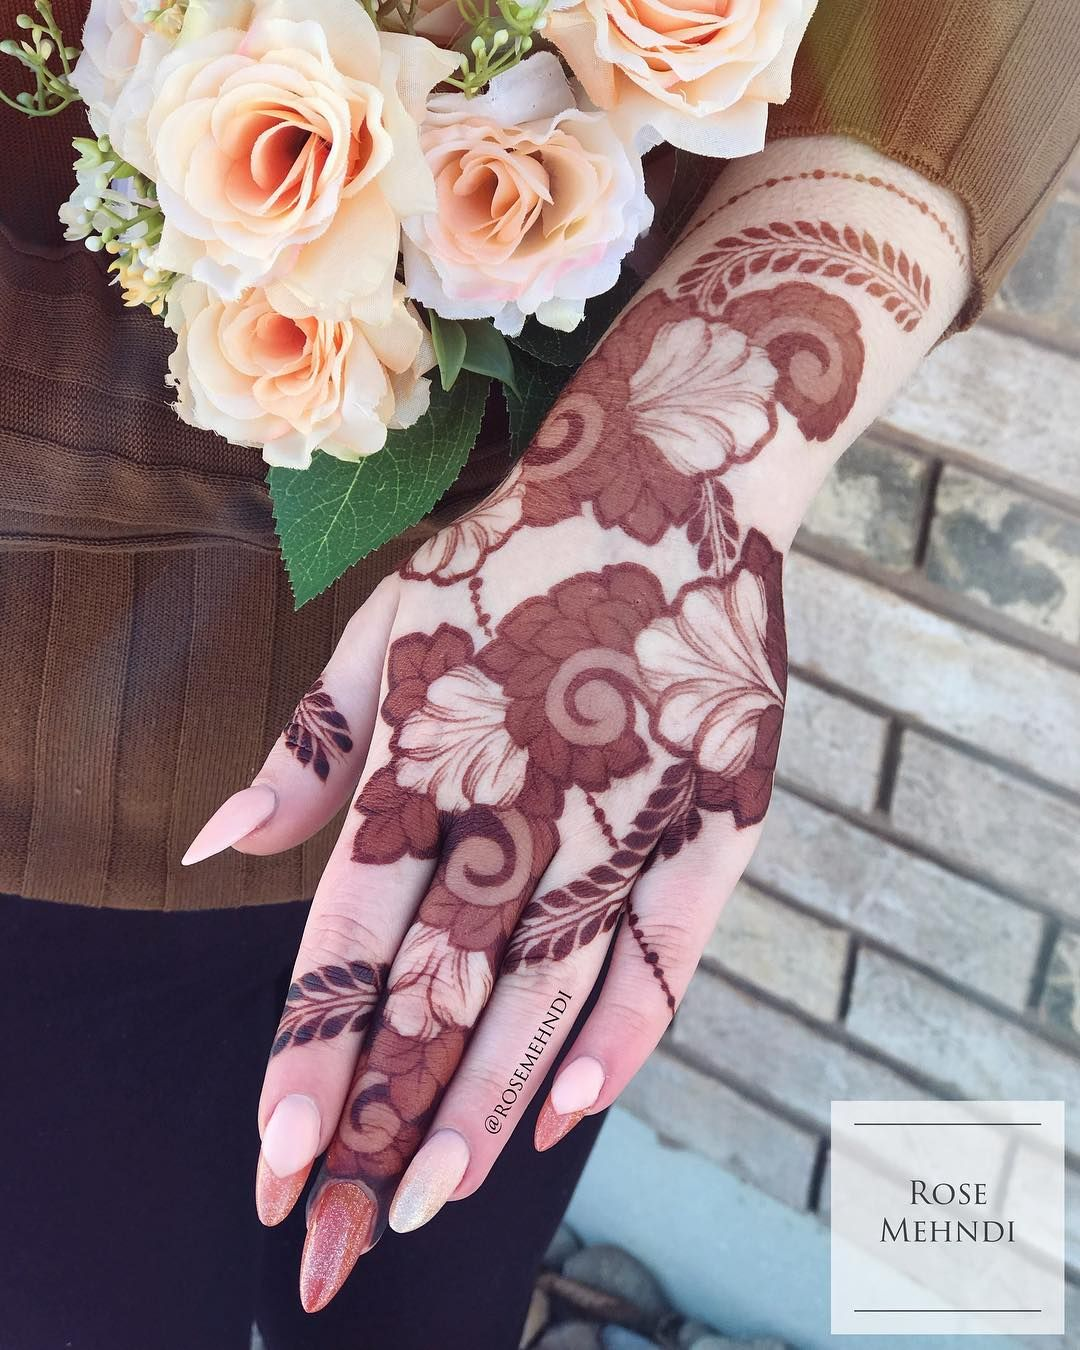 Image May Contain One Or More People And Flower With Images Cool Henna Designs Latest Bridal Mehndi Designs Mehndi Designs